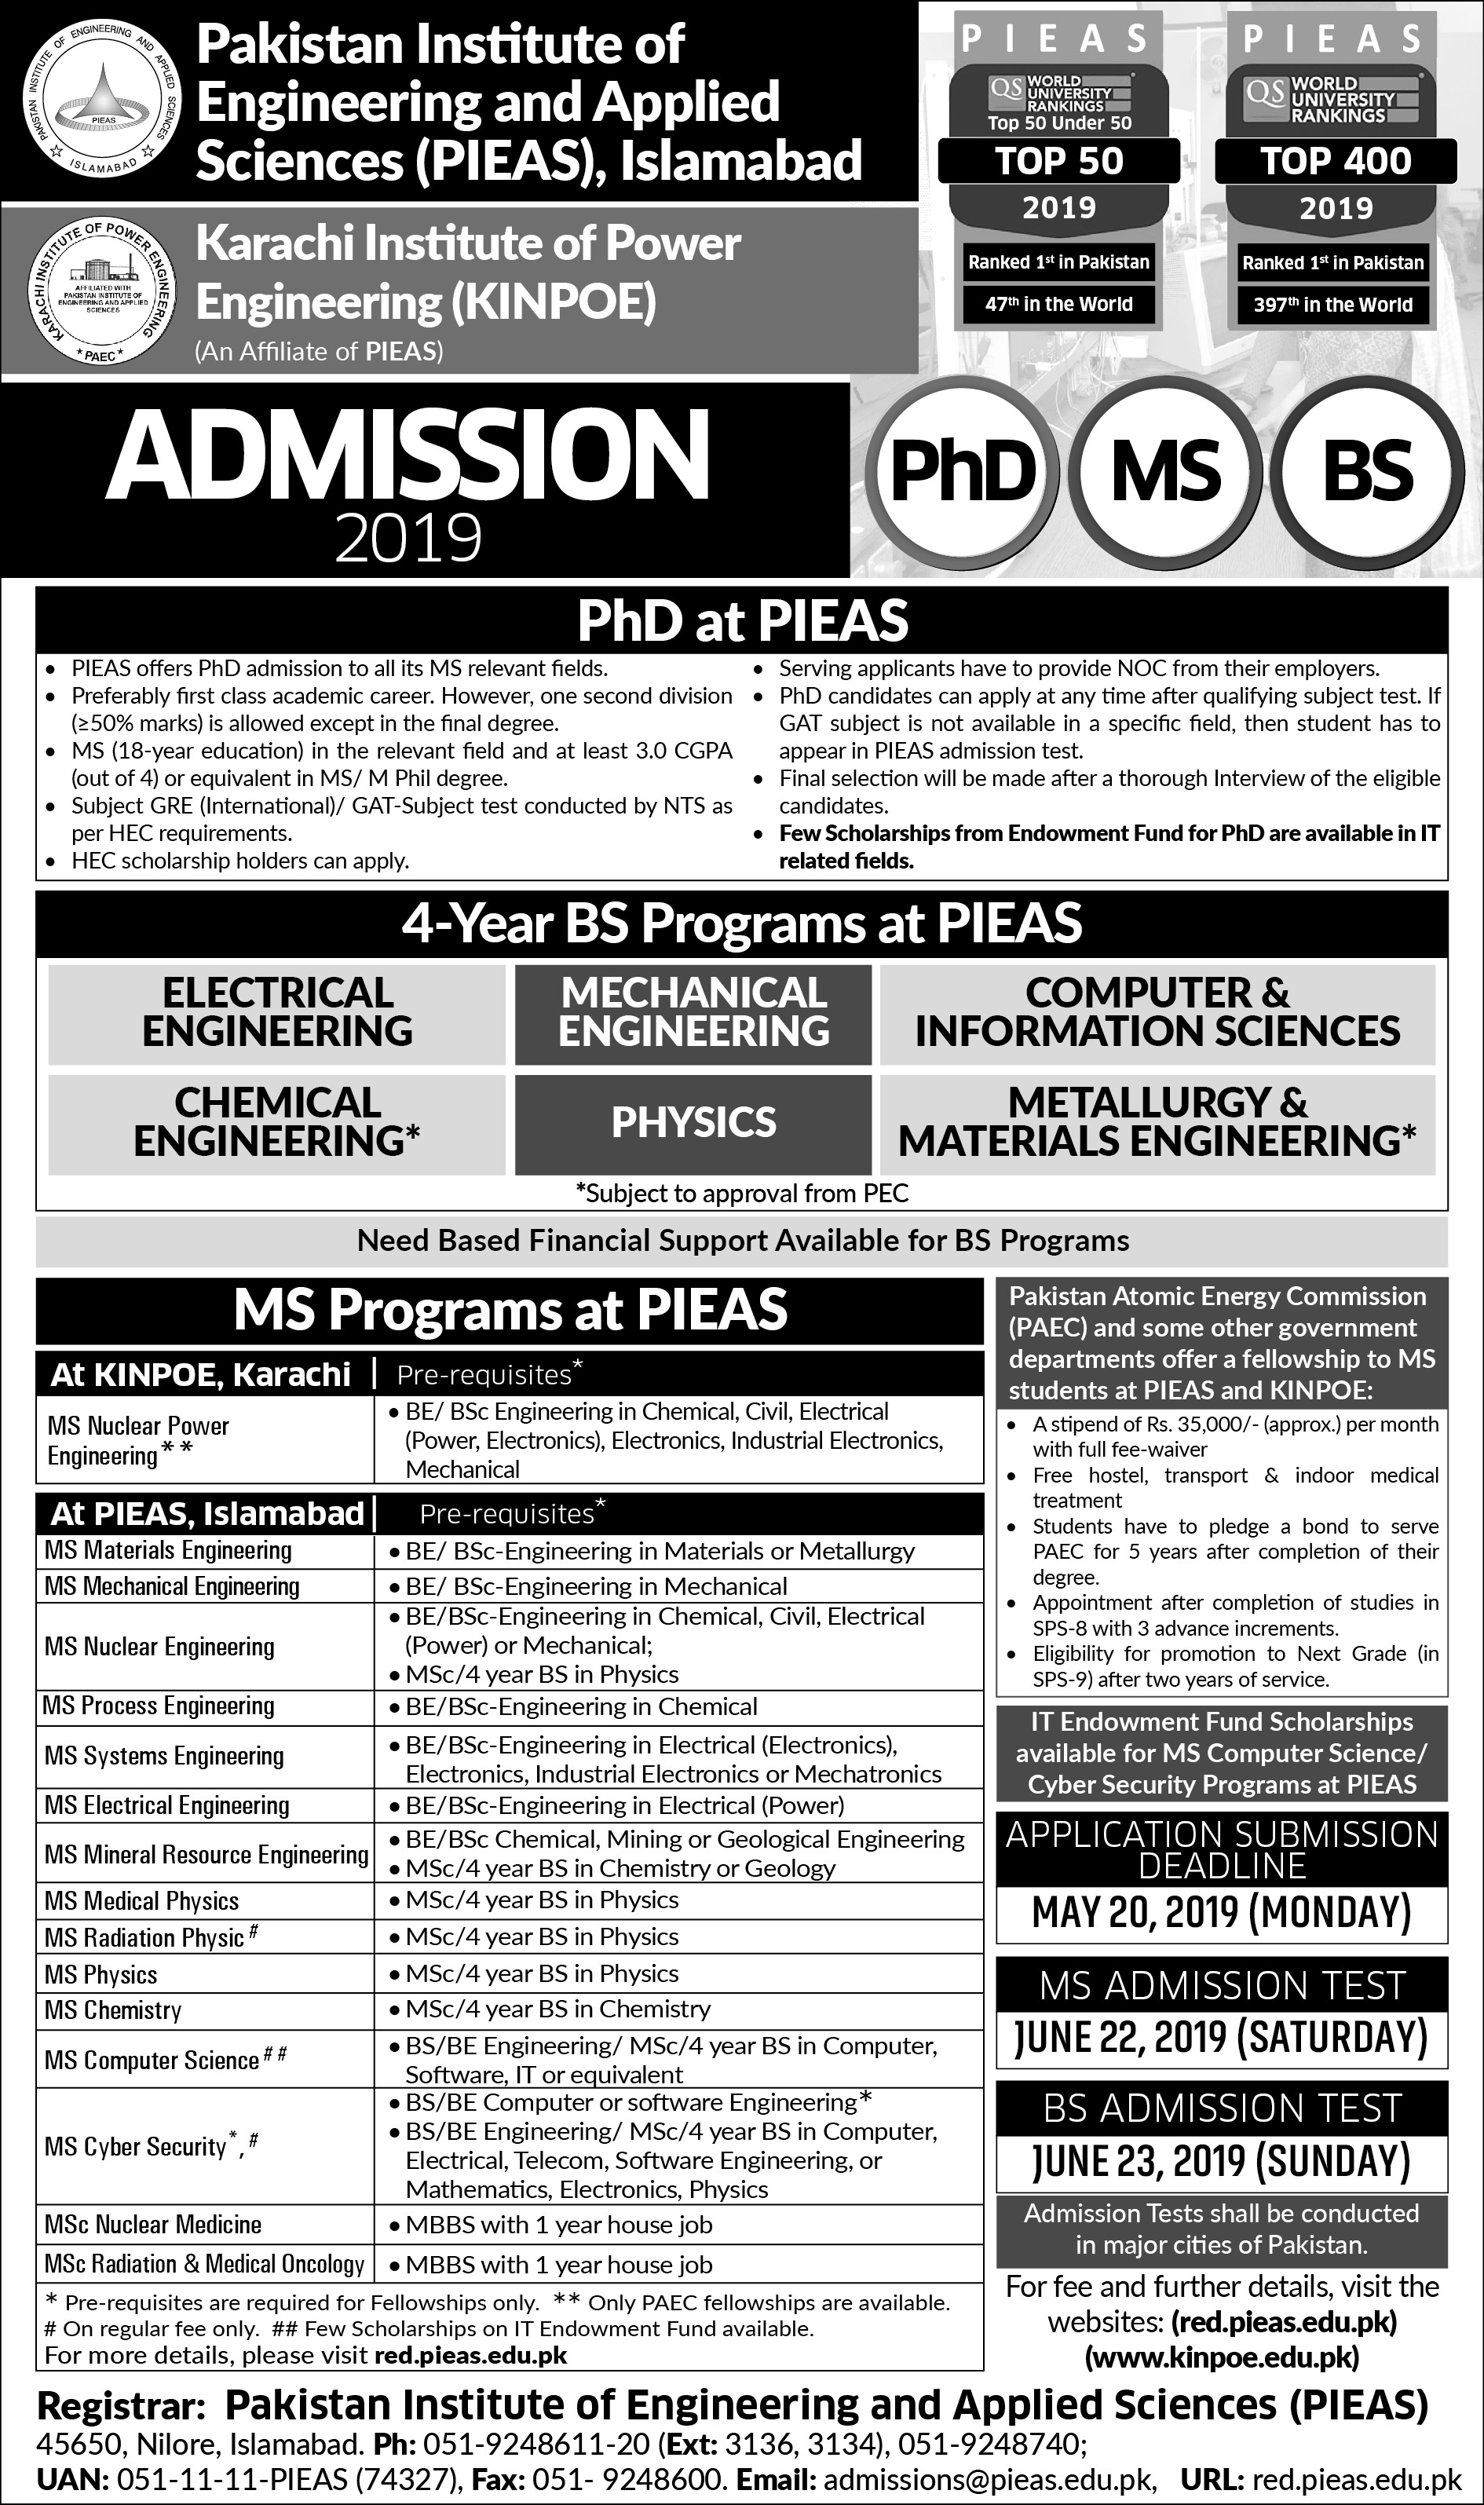 PIEAS Admission 2019 Last Date and Fee Structure